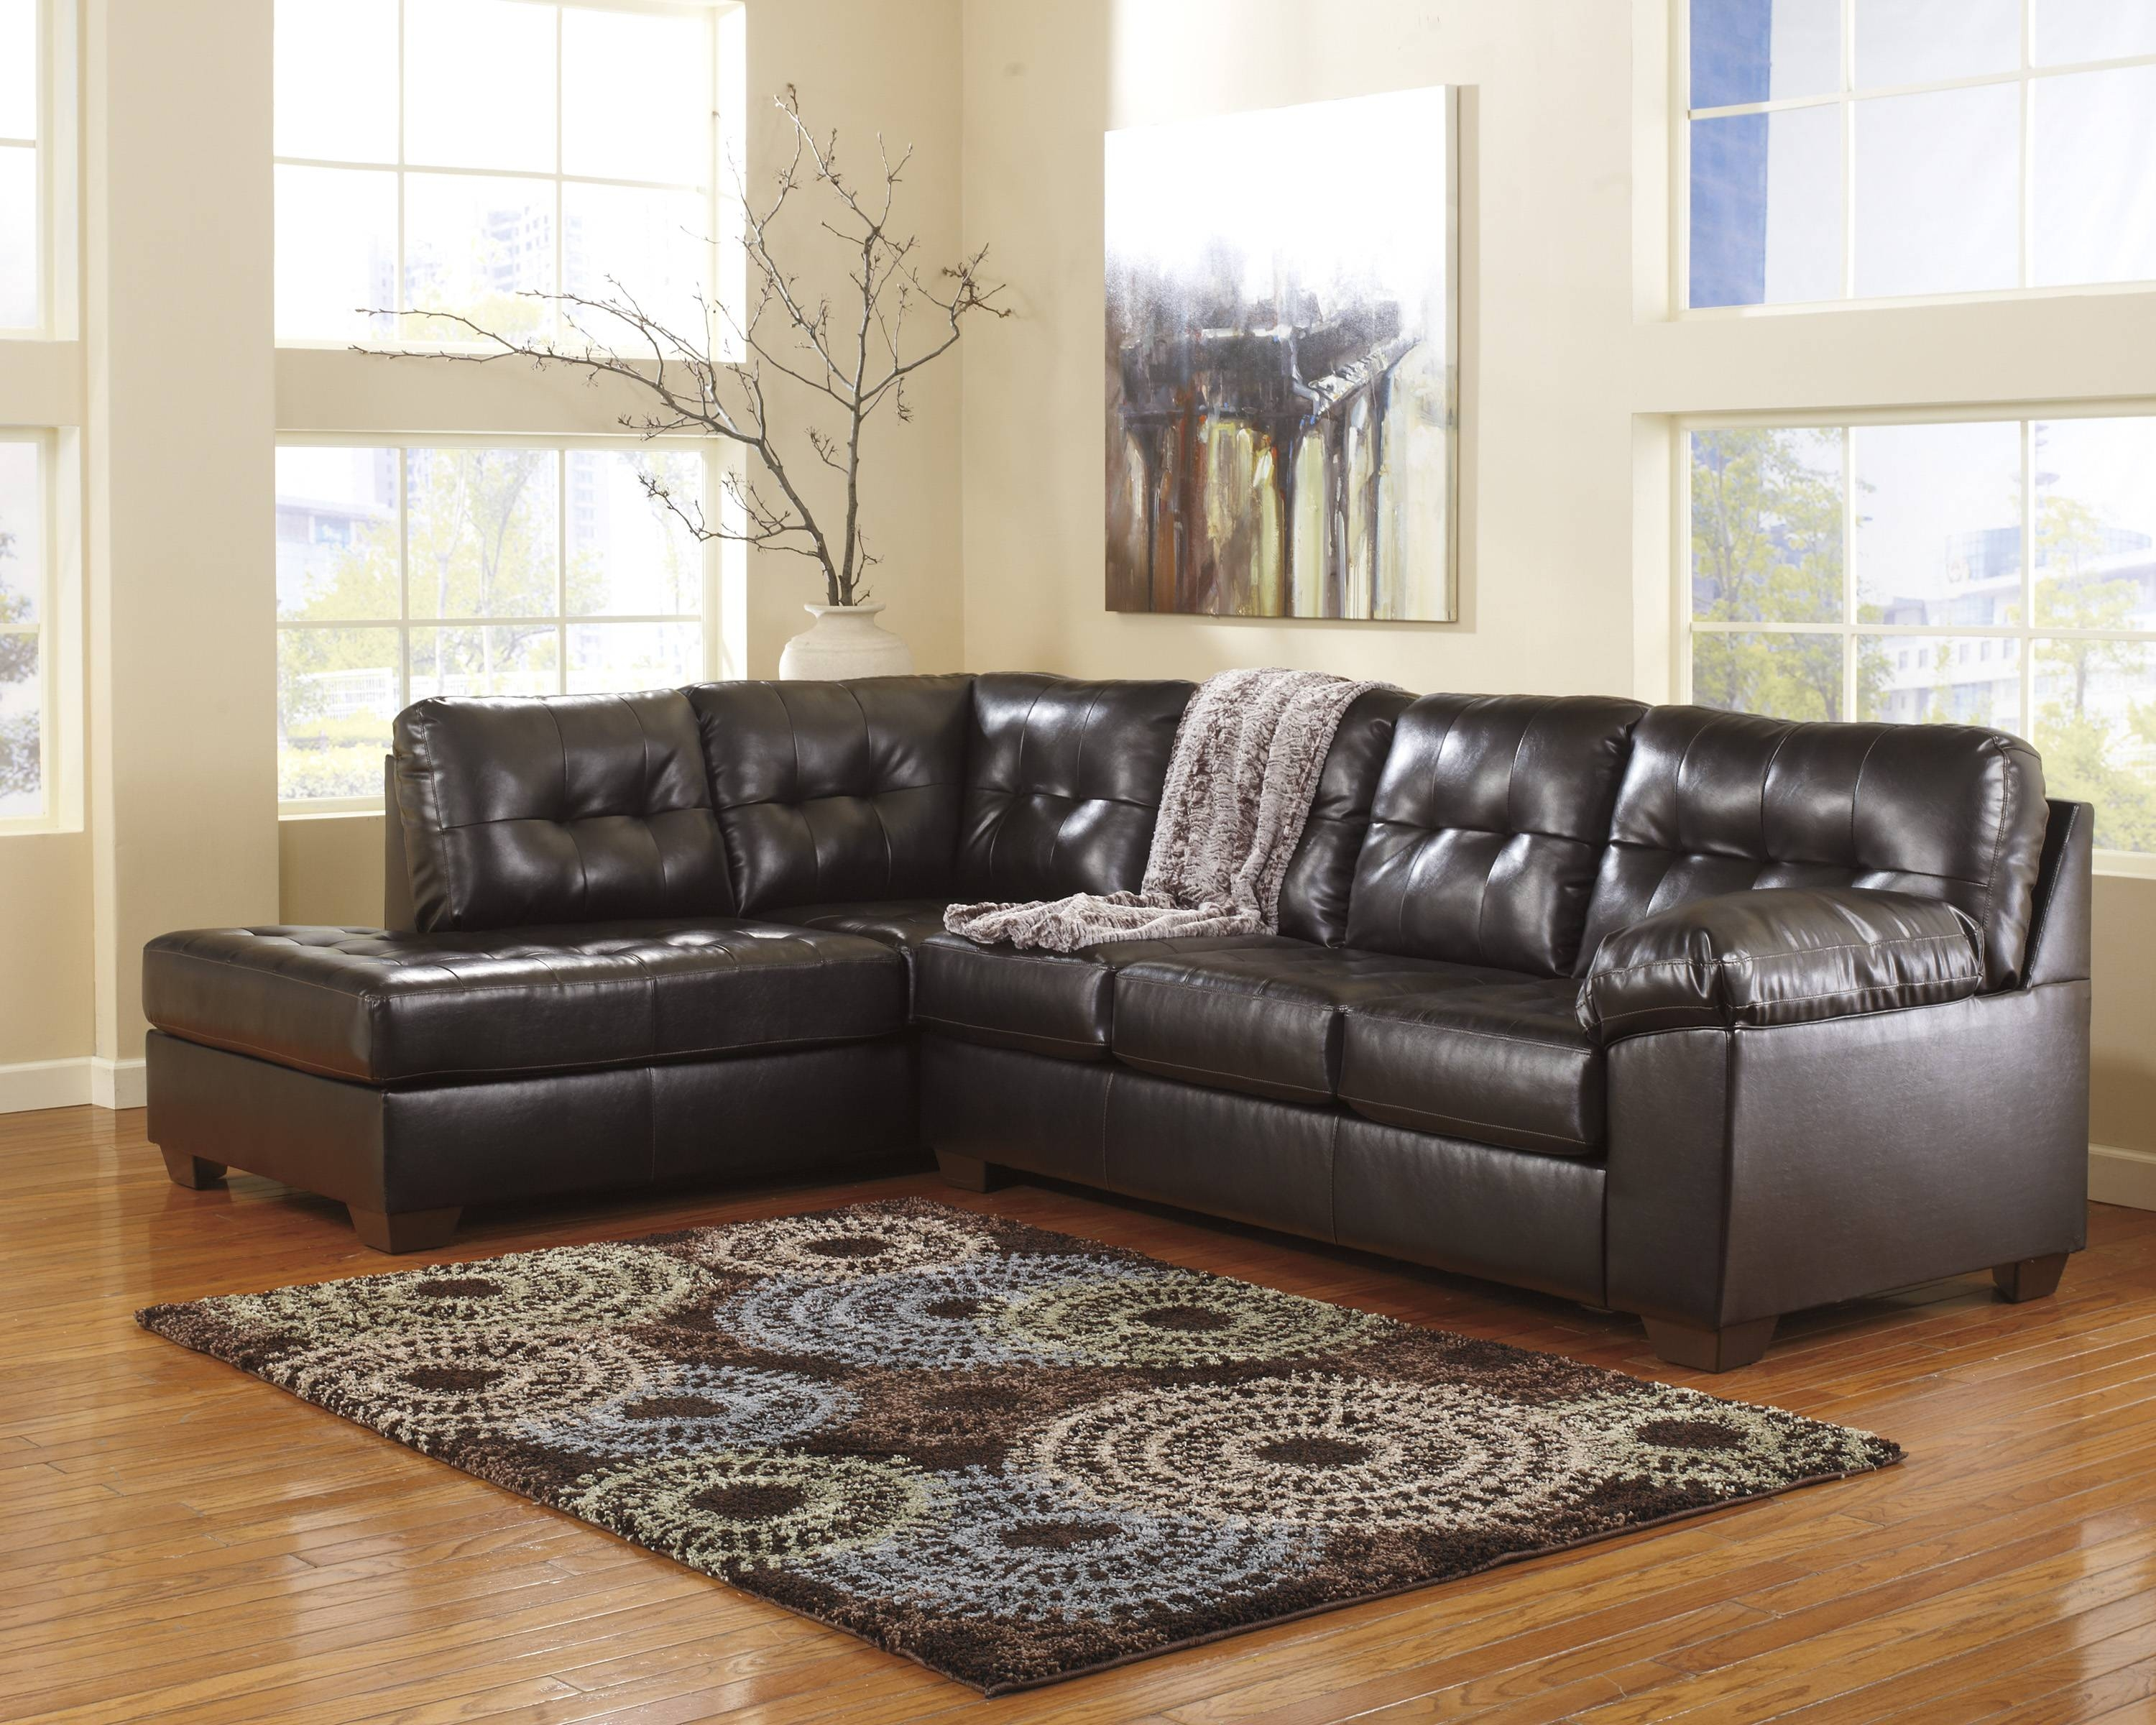 Ashley Furniture Leather Sectionals, Ashley Furniture Sofa inside Ashley Tufted Sofa (Image 2 of 30)